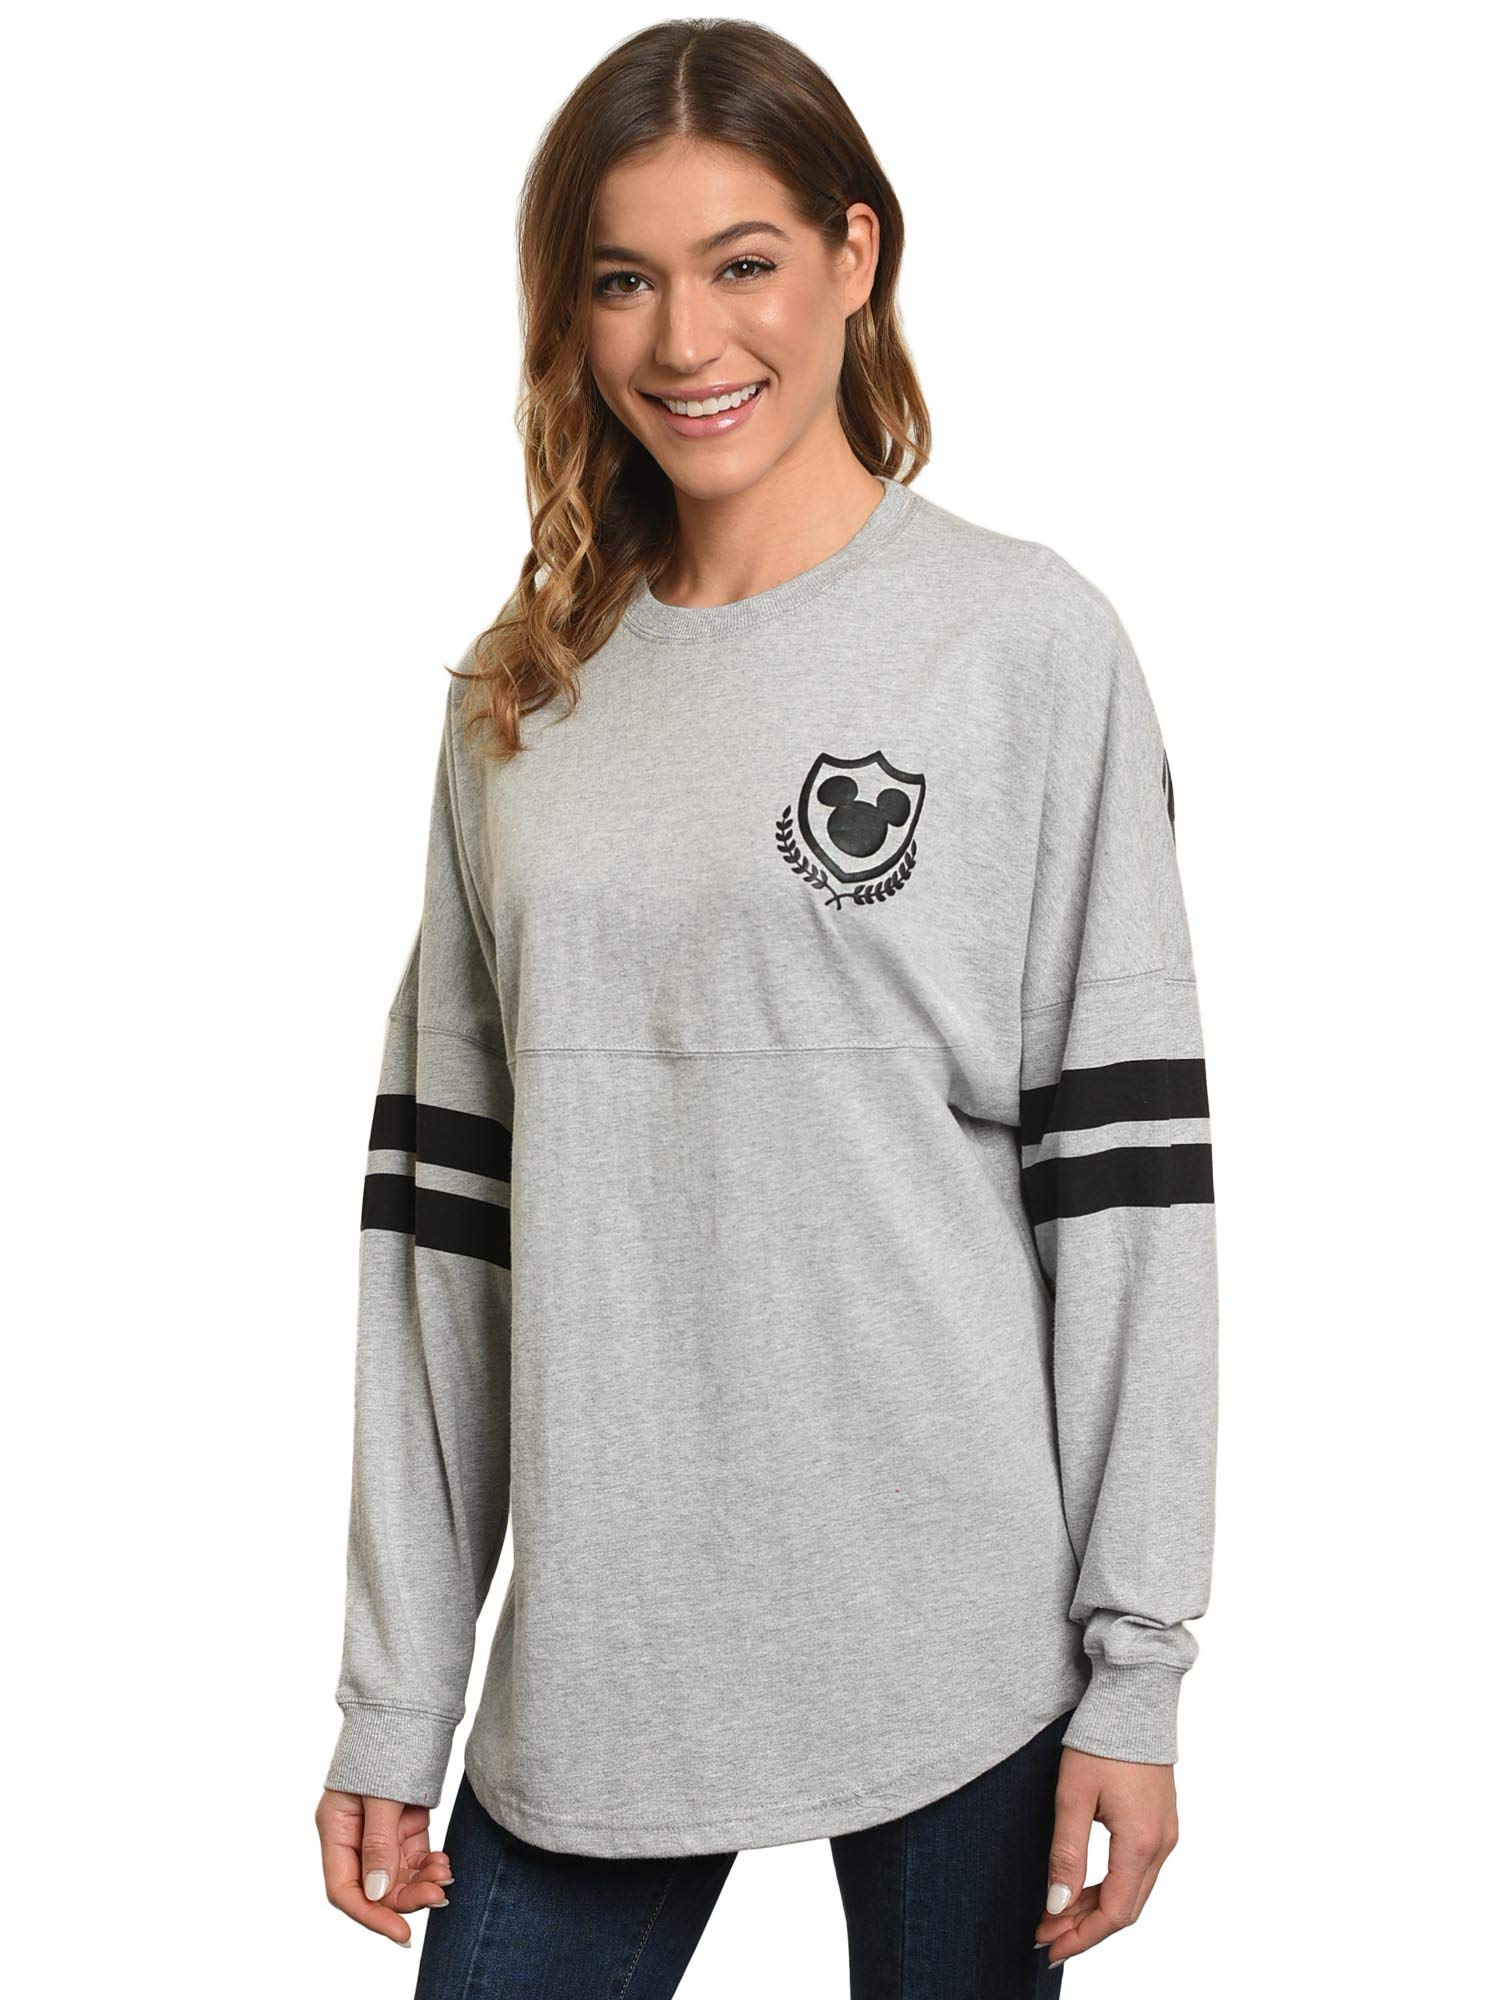 Disney Jersey Women's Mickey Mouse Long Sleeve Crew Neck (Heather Grey, Medium)